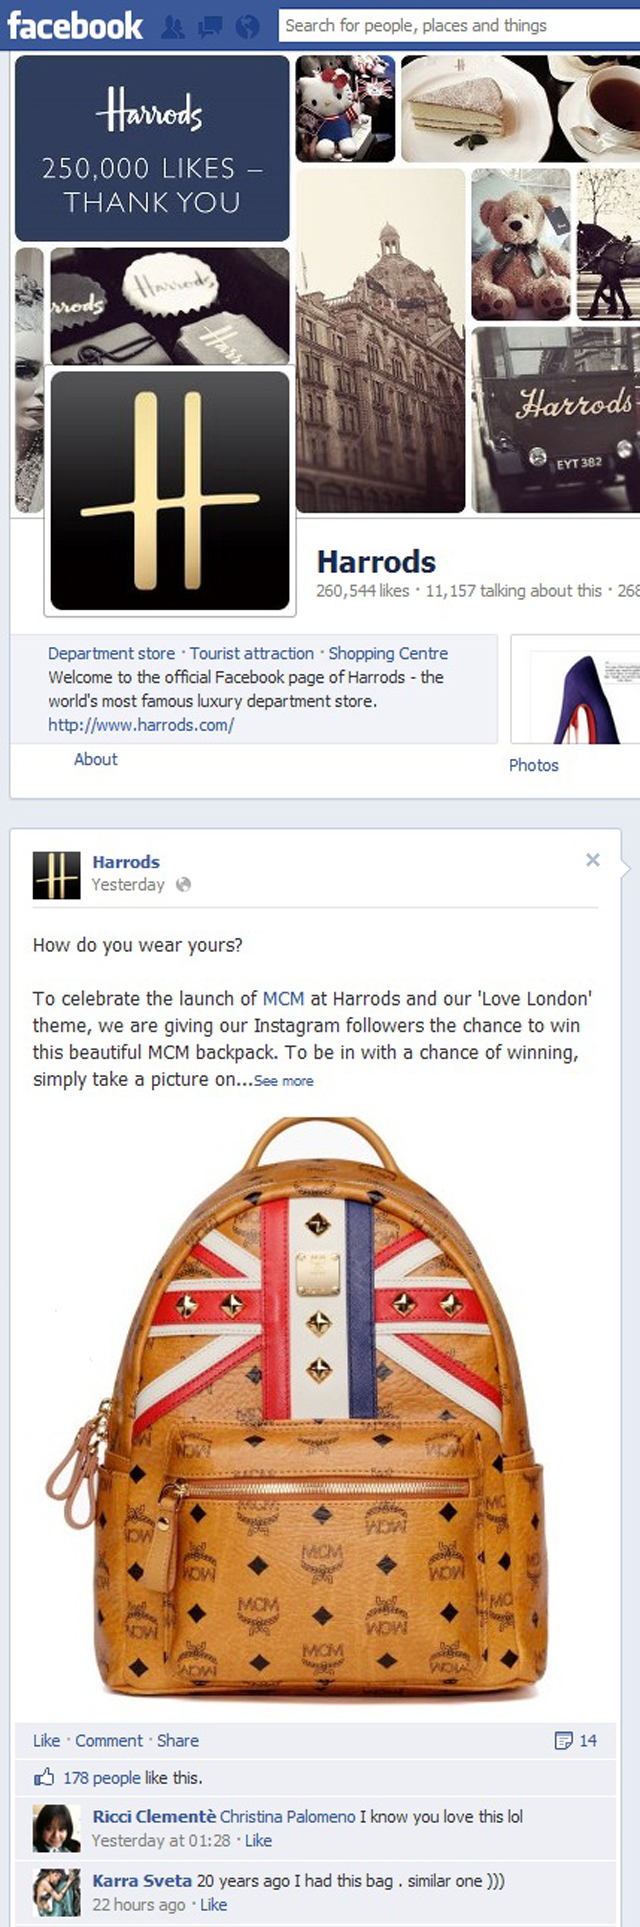 FacebookHarrodsContest